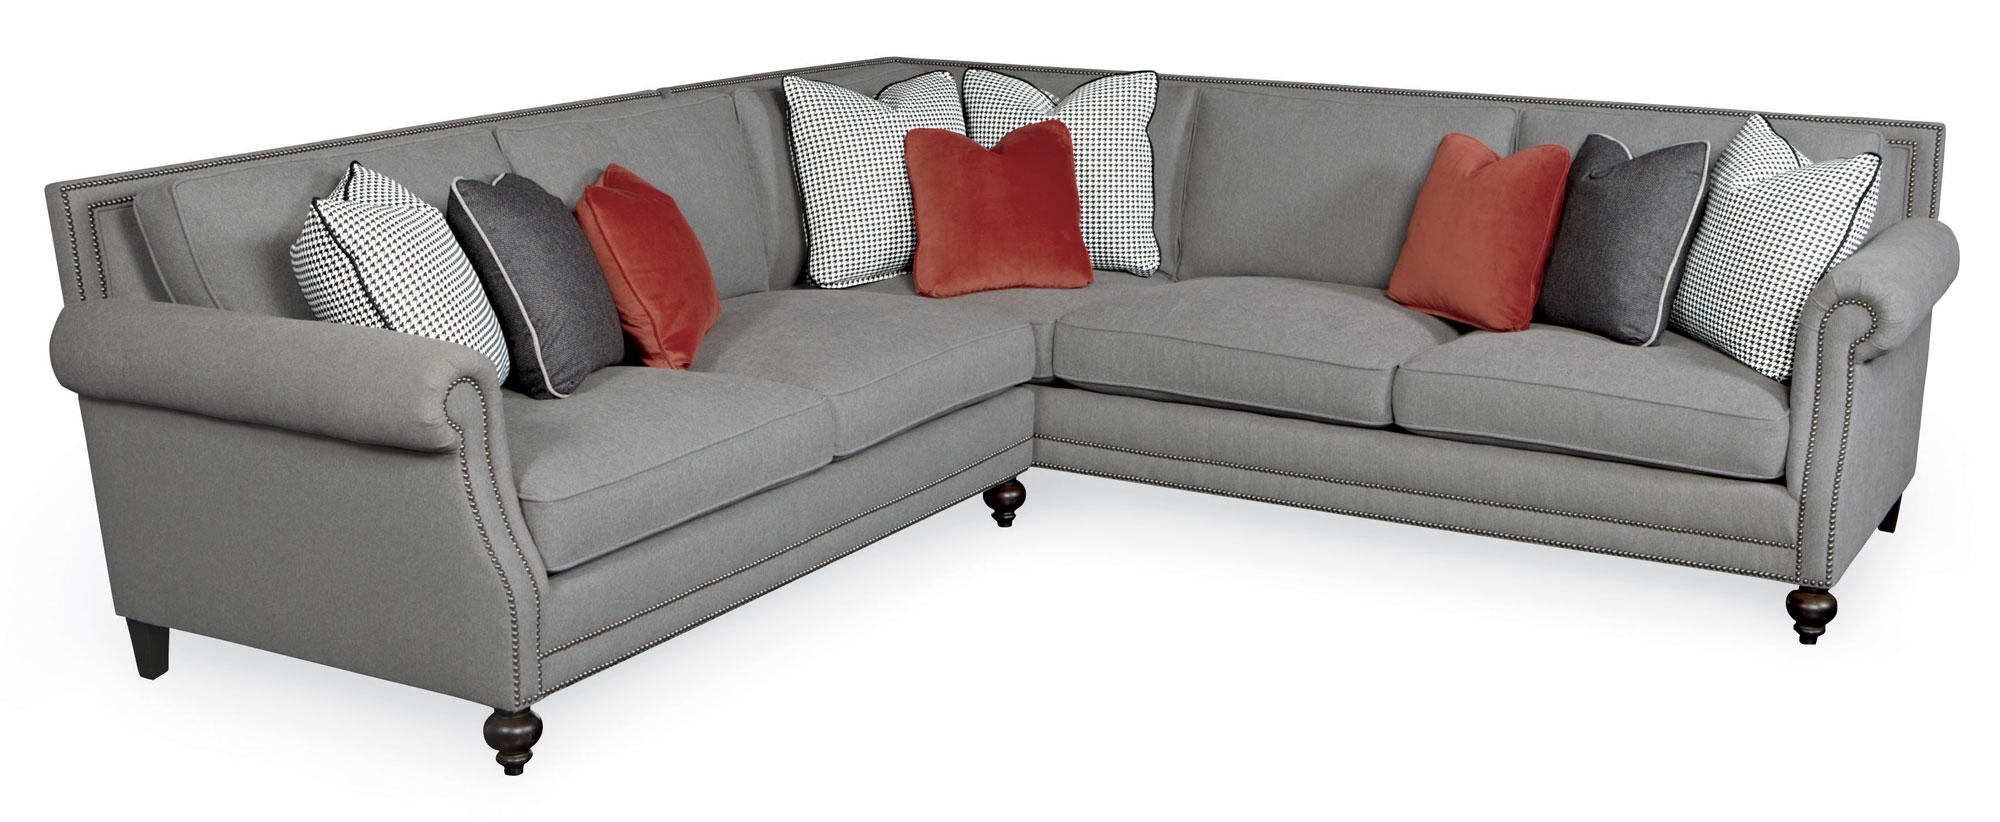 Sectional Sofa Design: Nailhead Sectional Sofa Fabric Leather Chaise In Sectional Sofas With Nailheads (View 5 of 10)